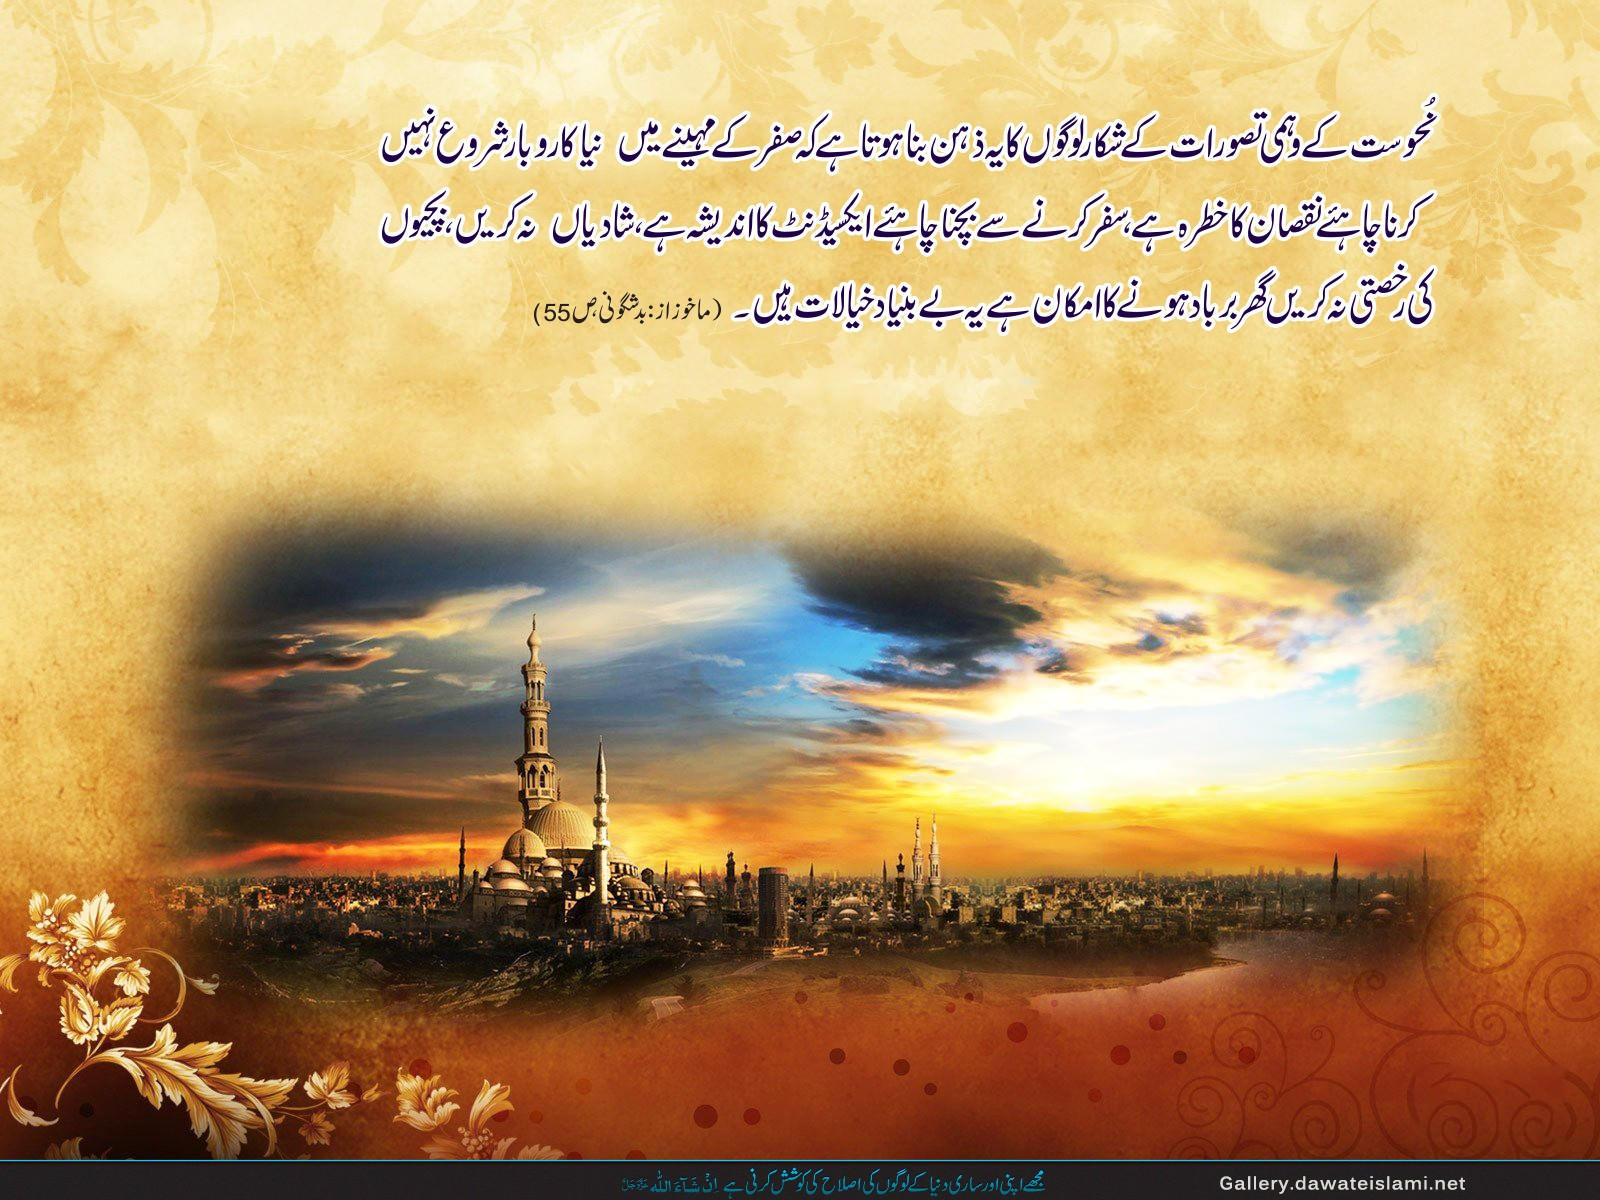 Ye be-bunyad khayalaat hain- Safar Wallpaper